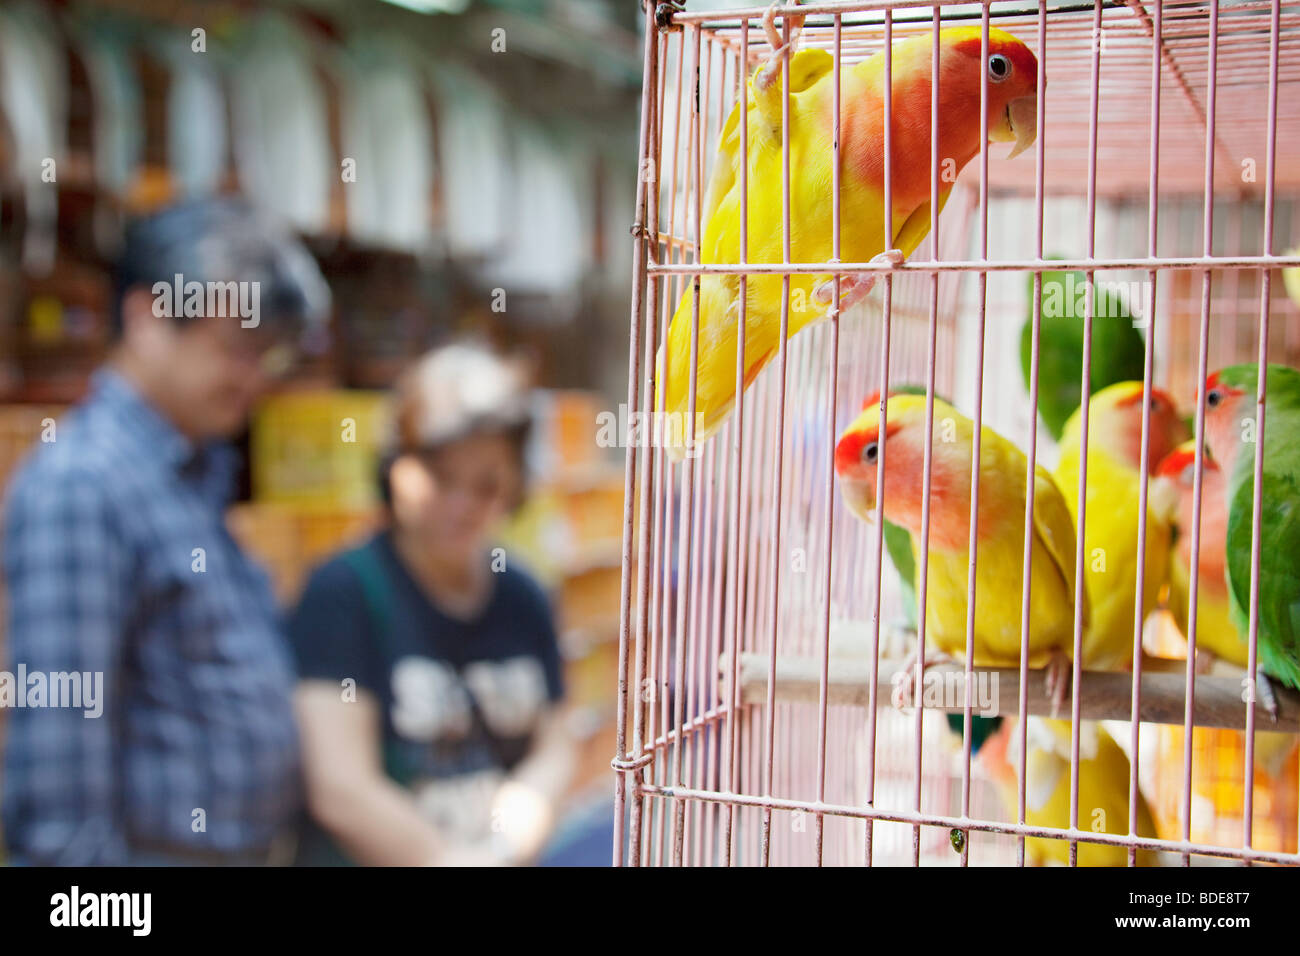 Birds in cage ready for sale Bird Market, Mong Kok in Hong Kong, China. - Stock Image